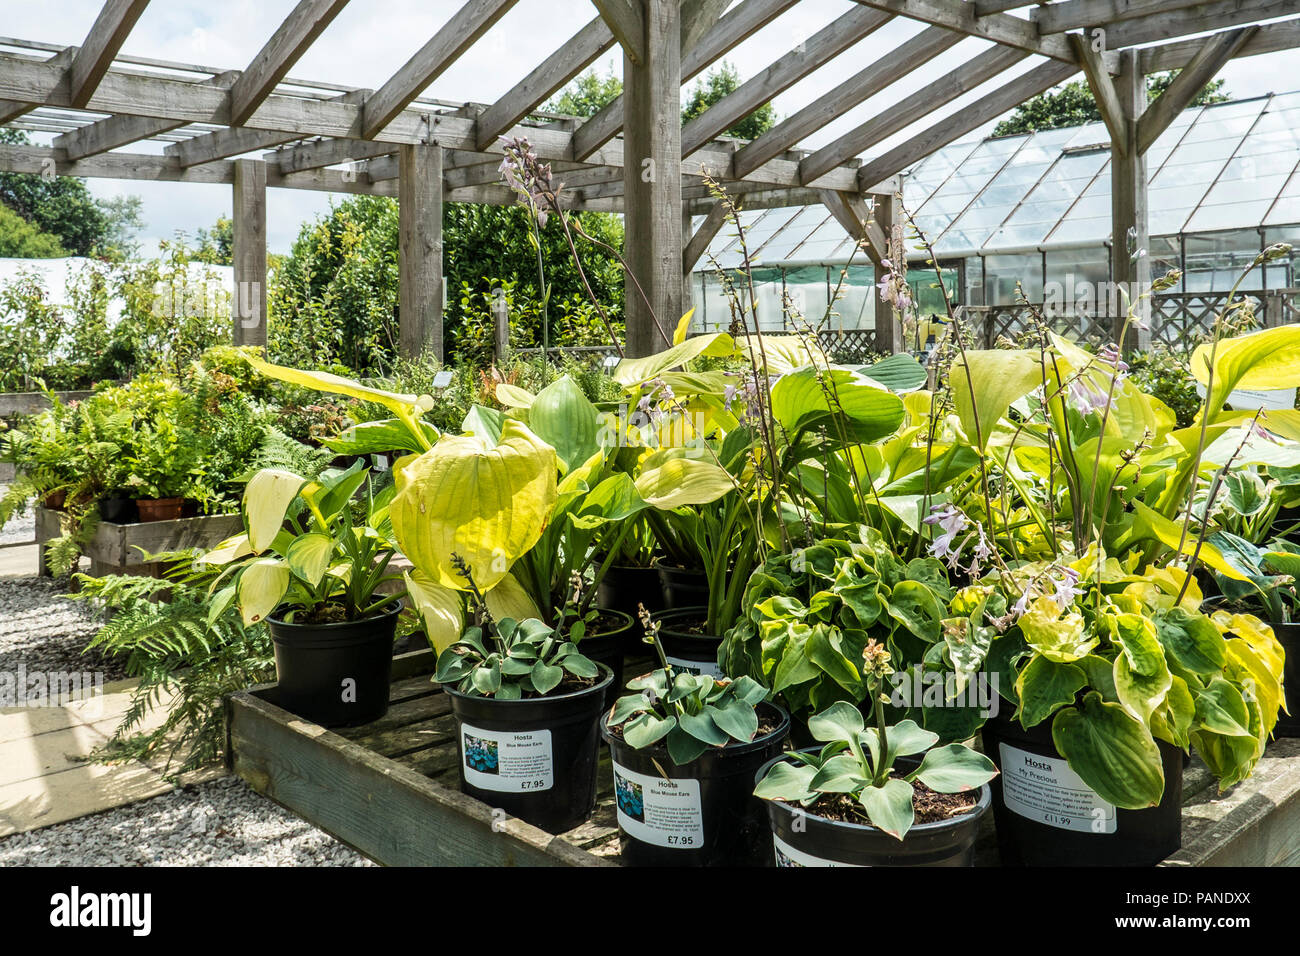 Various Types Of Hosta Plants On Sale Display In A Garden Centre